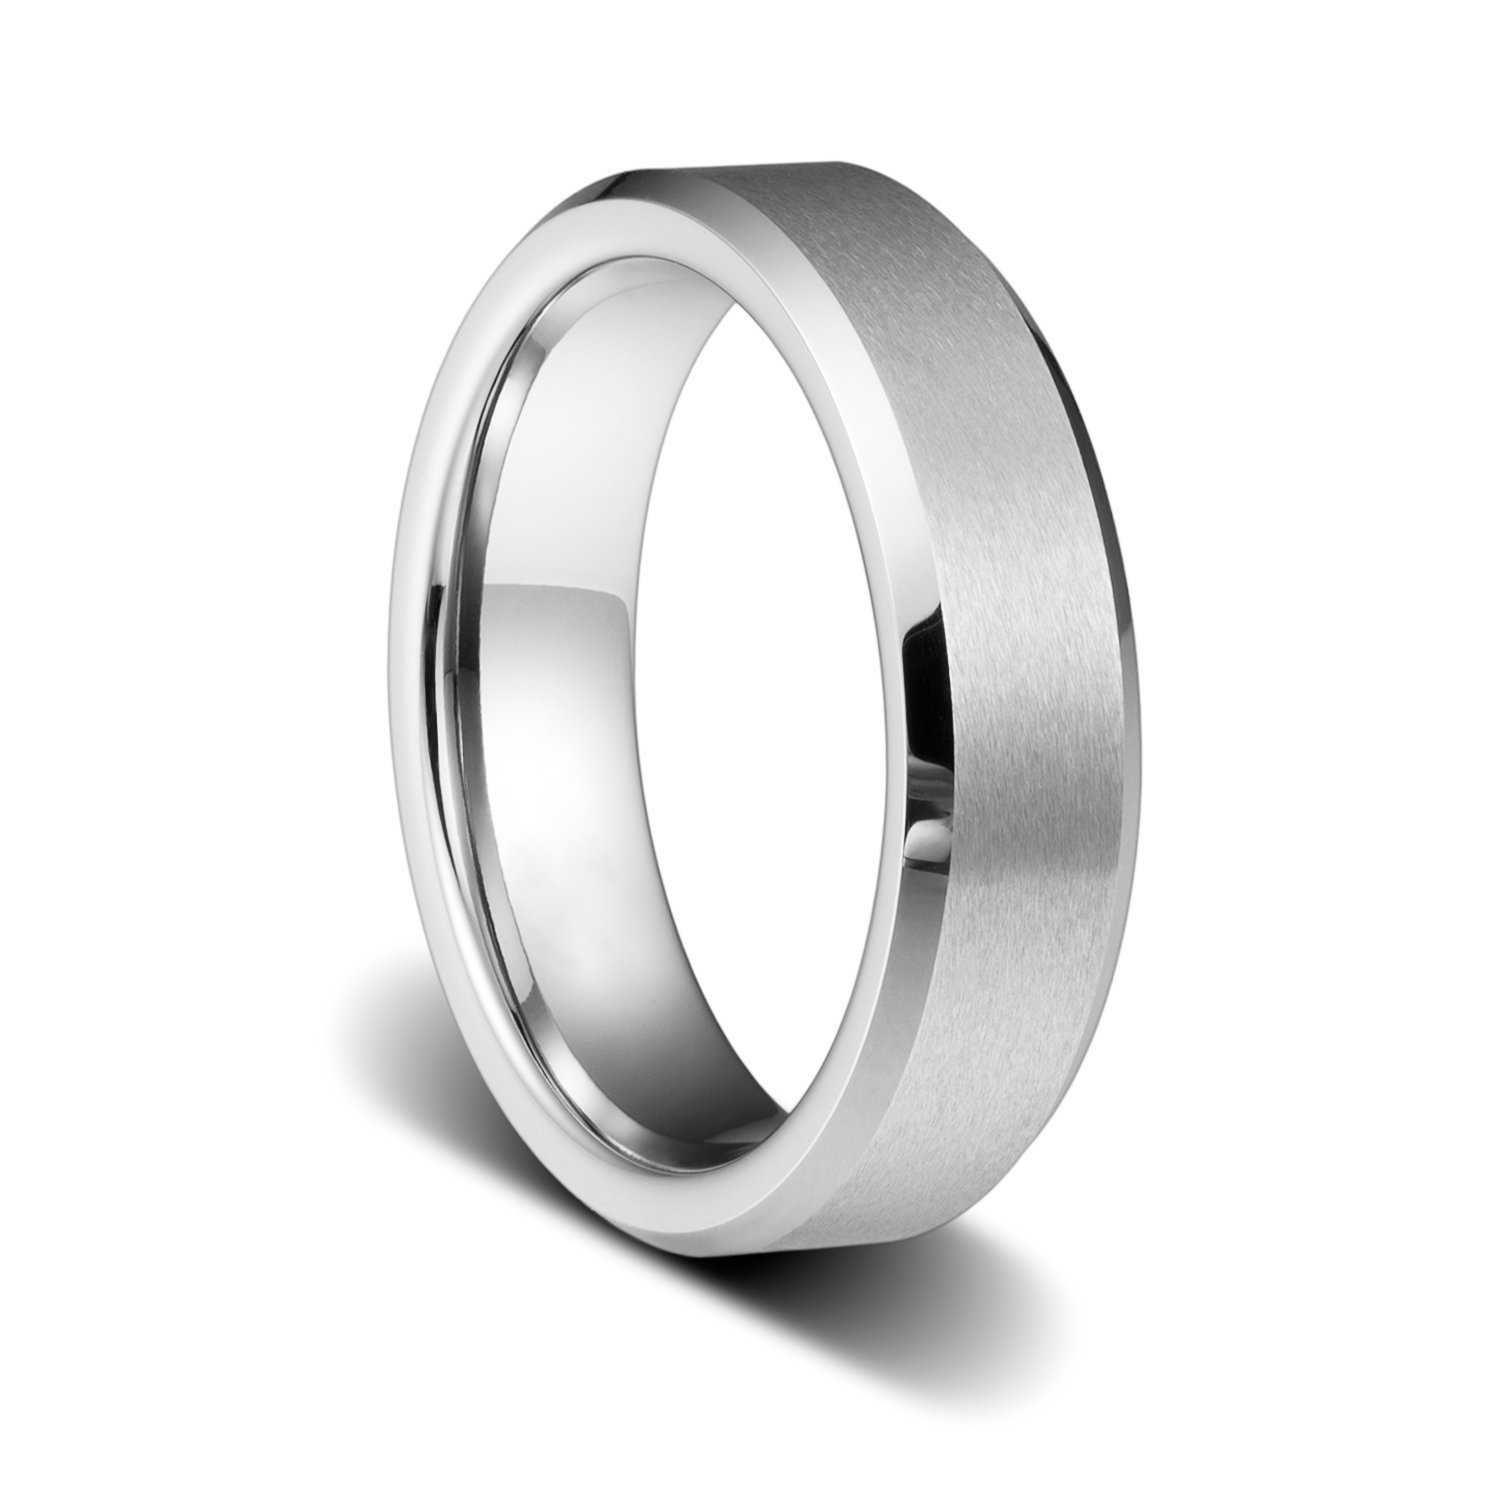 TUSEN JEWELRY Engraving Personalized Custom Wedding Band Engagement Tungsten Ring 6mm Size:8.5